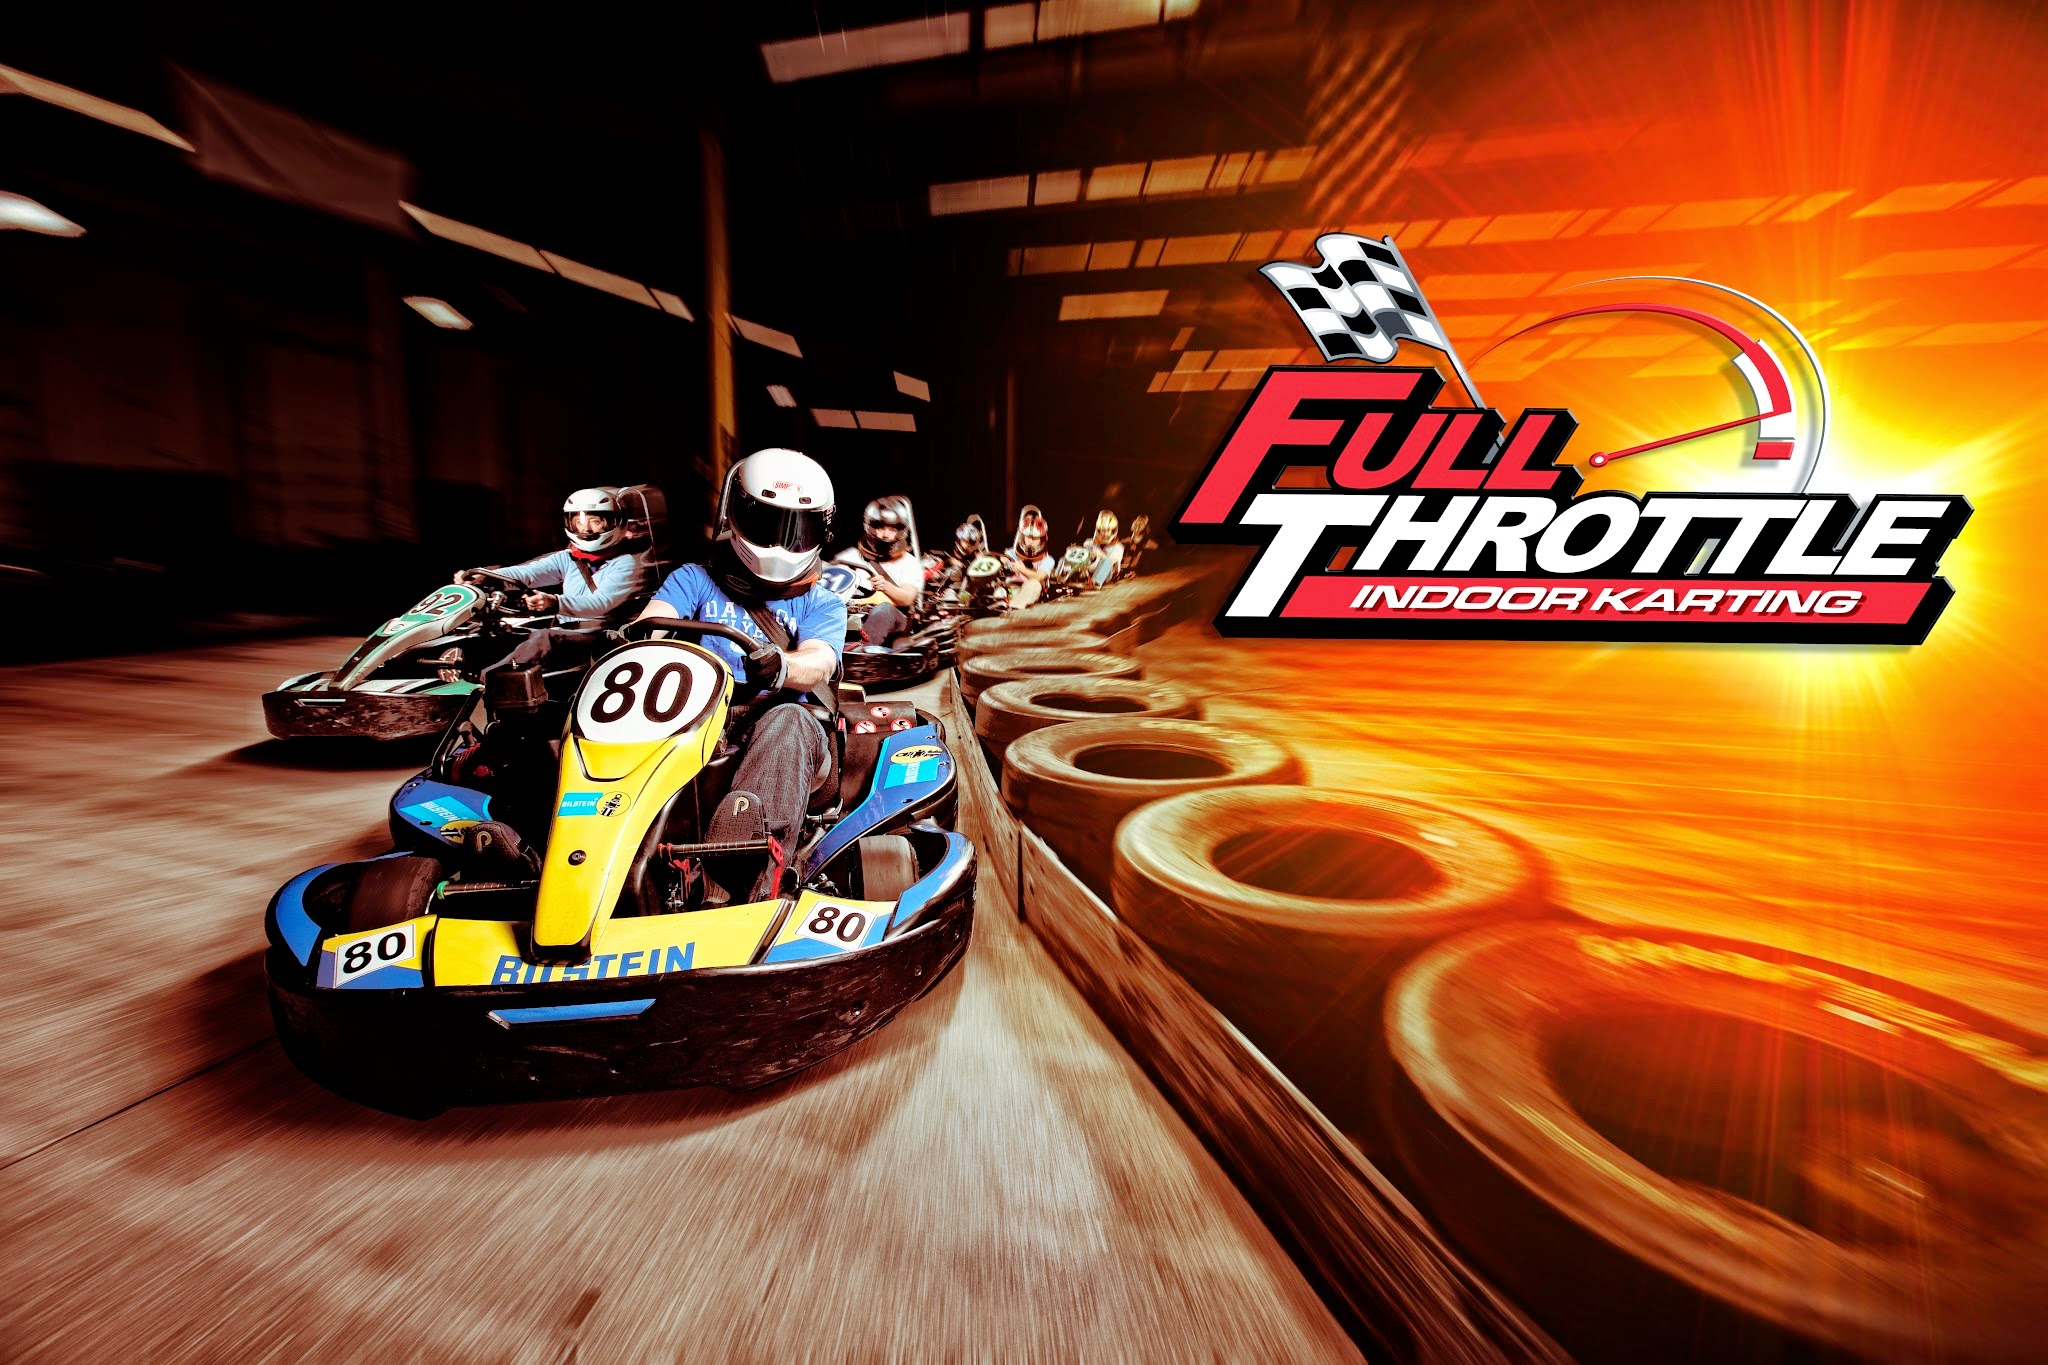 Know before you visit Full Throttle Indoor Karting, Cincinnati: See Address, Images, Reviews, Hours, Price, Map for Full Throttle Indoor Karting, ranked No. 20 on Triphobo among attractions in Cincinnati. Check Full Throttle Indoor Karting Ticket Price and Tours to book online/5(5).